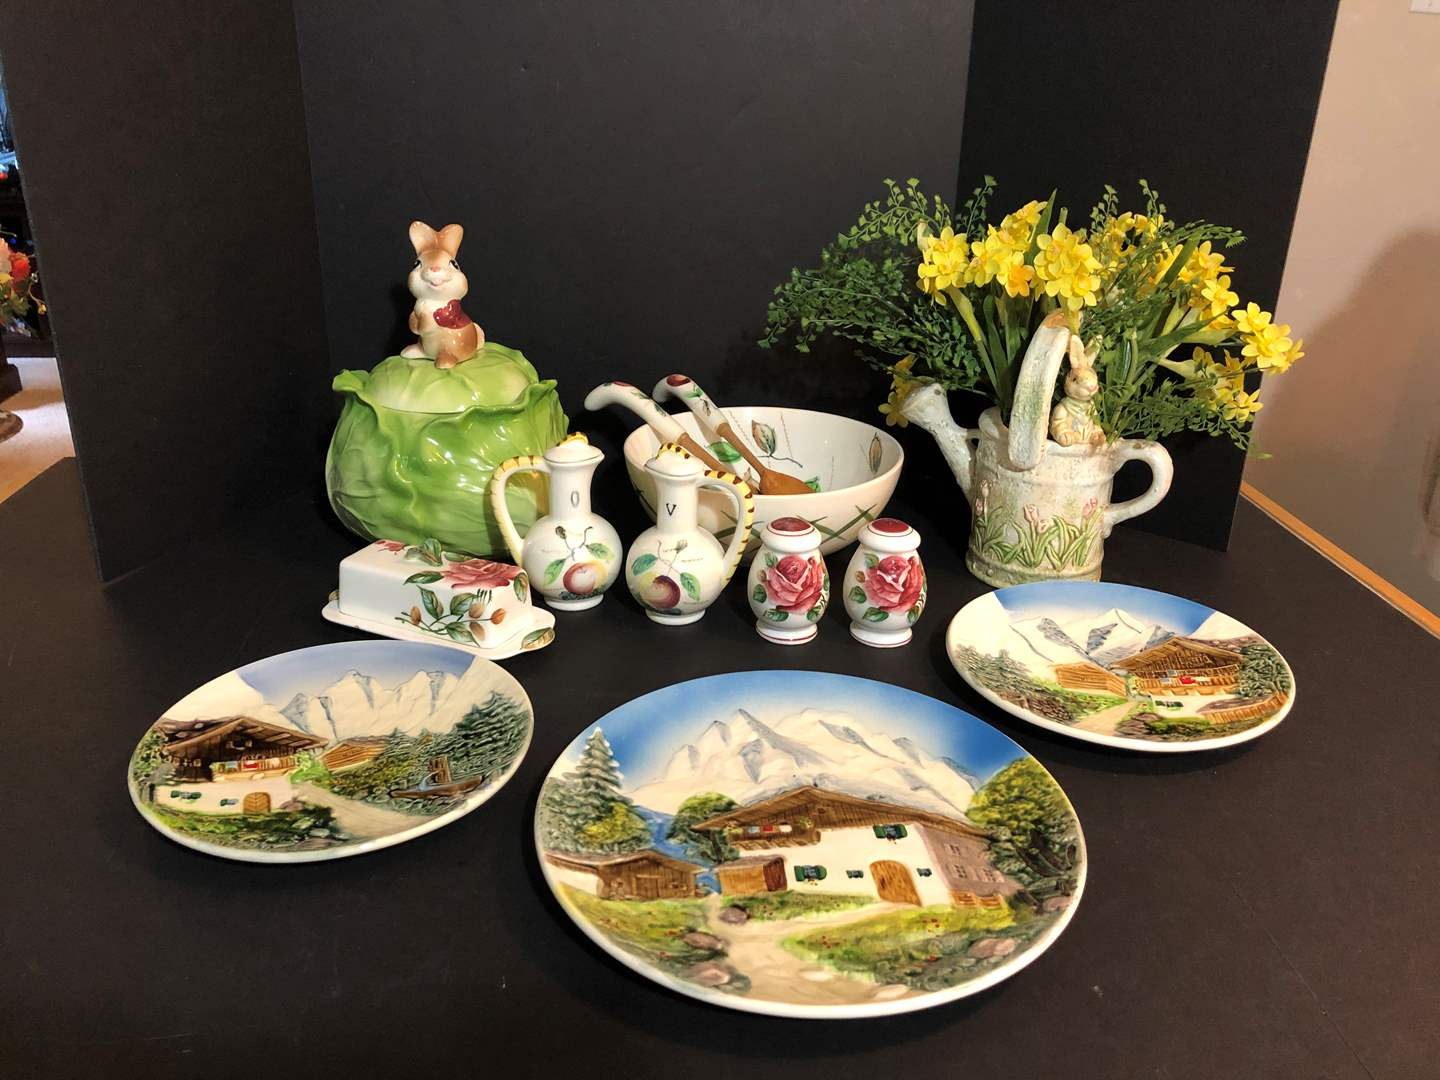 Lot # 71 - Three Awesome Plates Made in Western Germany & Salad Bowl, Peter Rabbit Cookie Jar & More..  (main image)